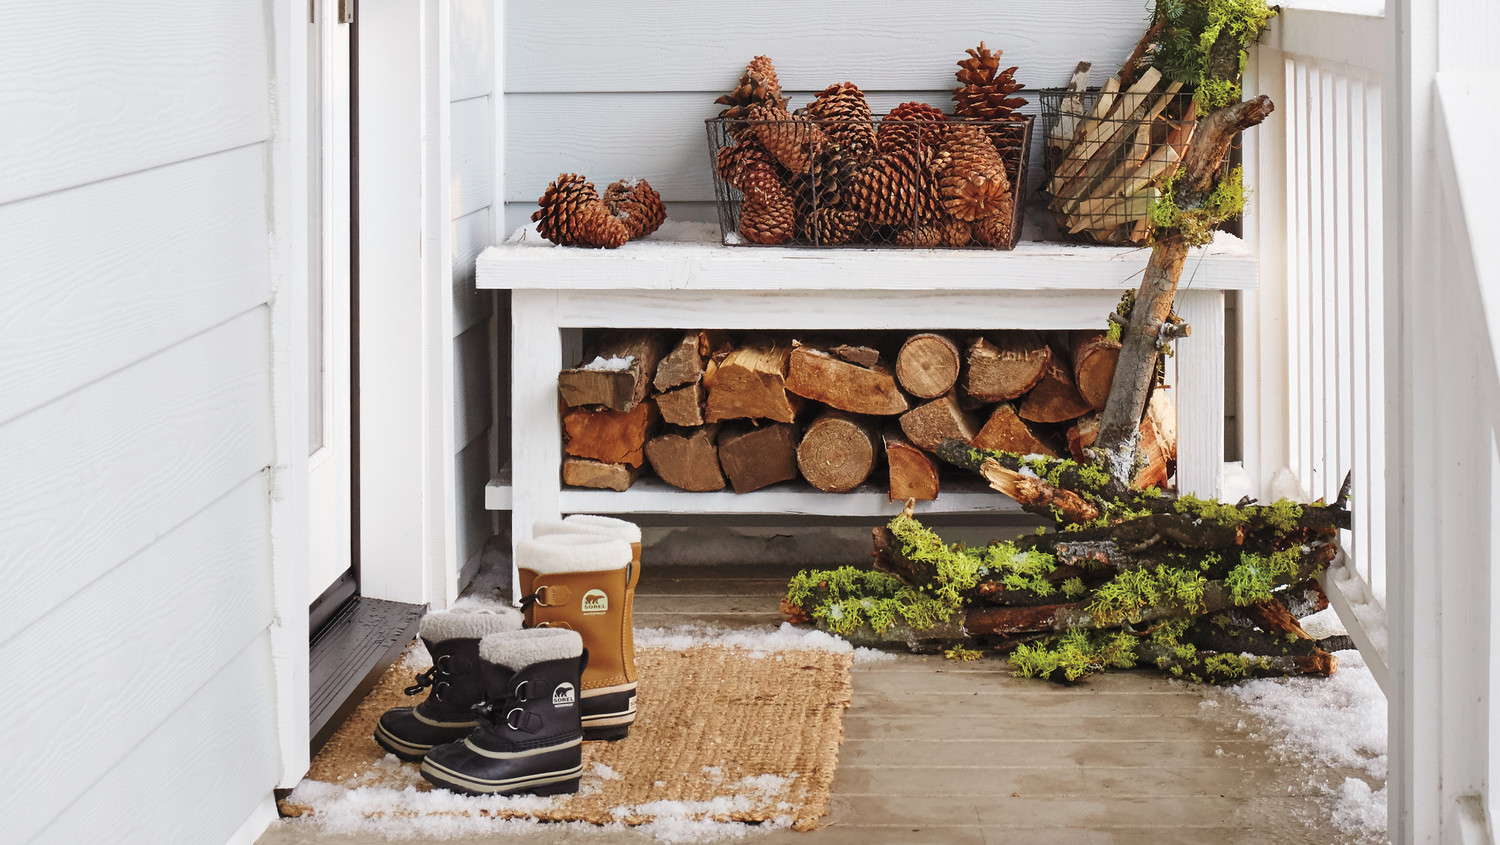 Set Up a Cozy Winter Porch with These Simple Decorating Tips